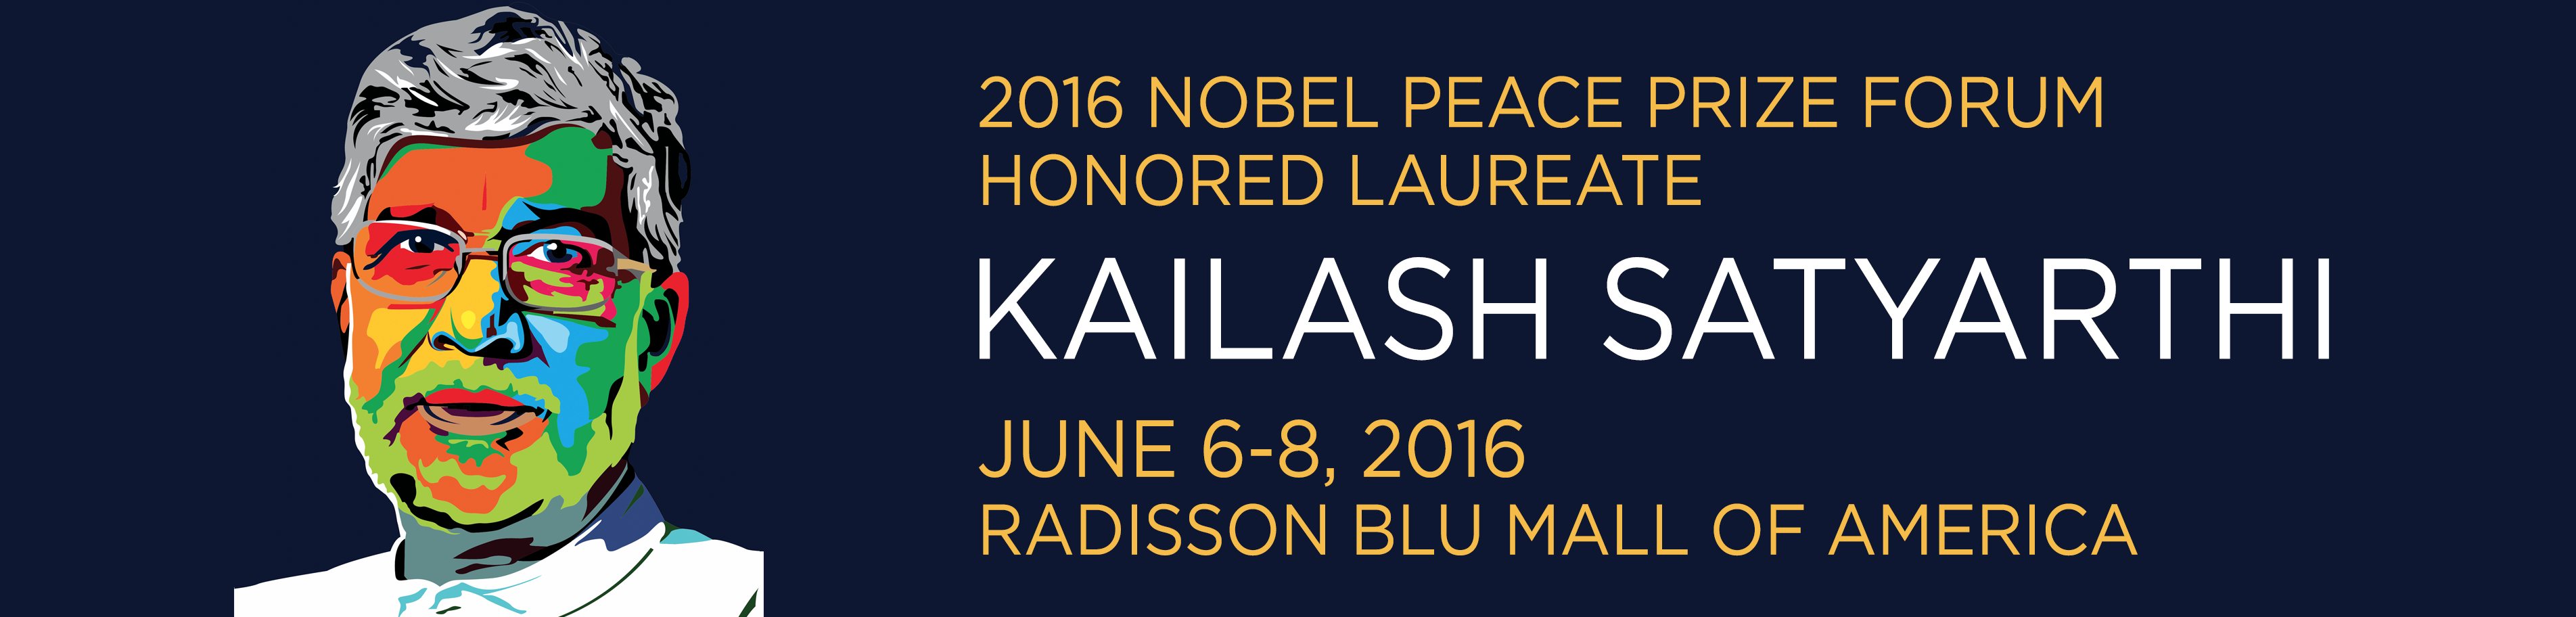 Kailash Satyarthi is the honored Nobel Peace Prize Winner who will speak at the Nobel Peace Prize Forum June 6 to 8 in Bloomington, Minnesota